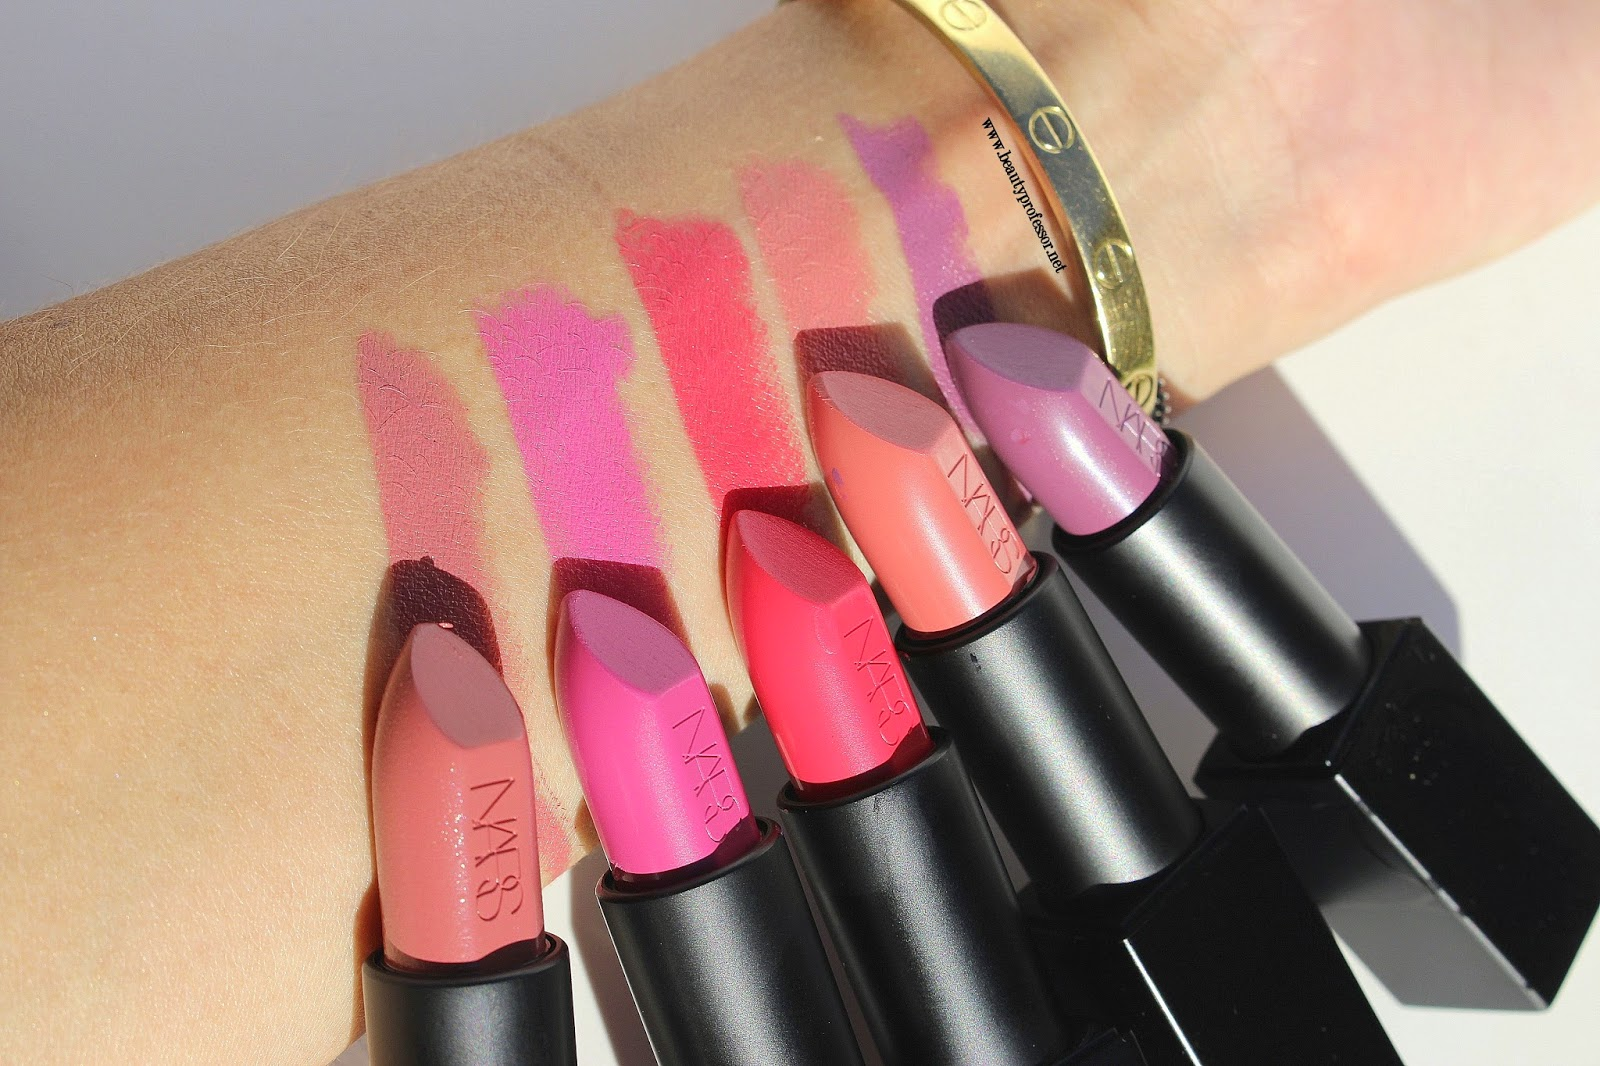 Extrêmement Beauty Professor: NARS Audacious LipstickSwatches of My Selections! LB35